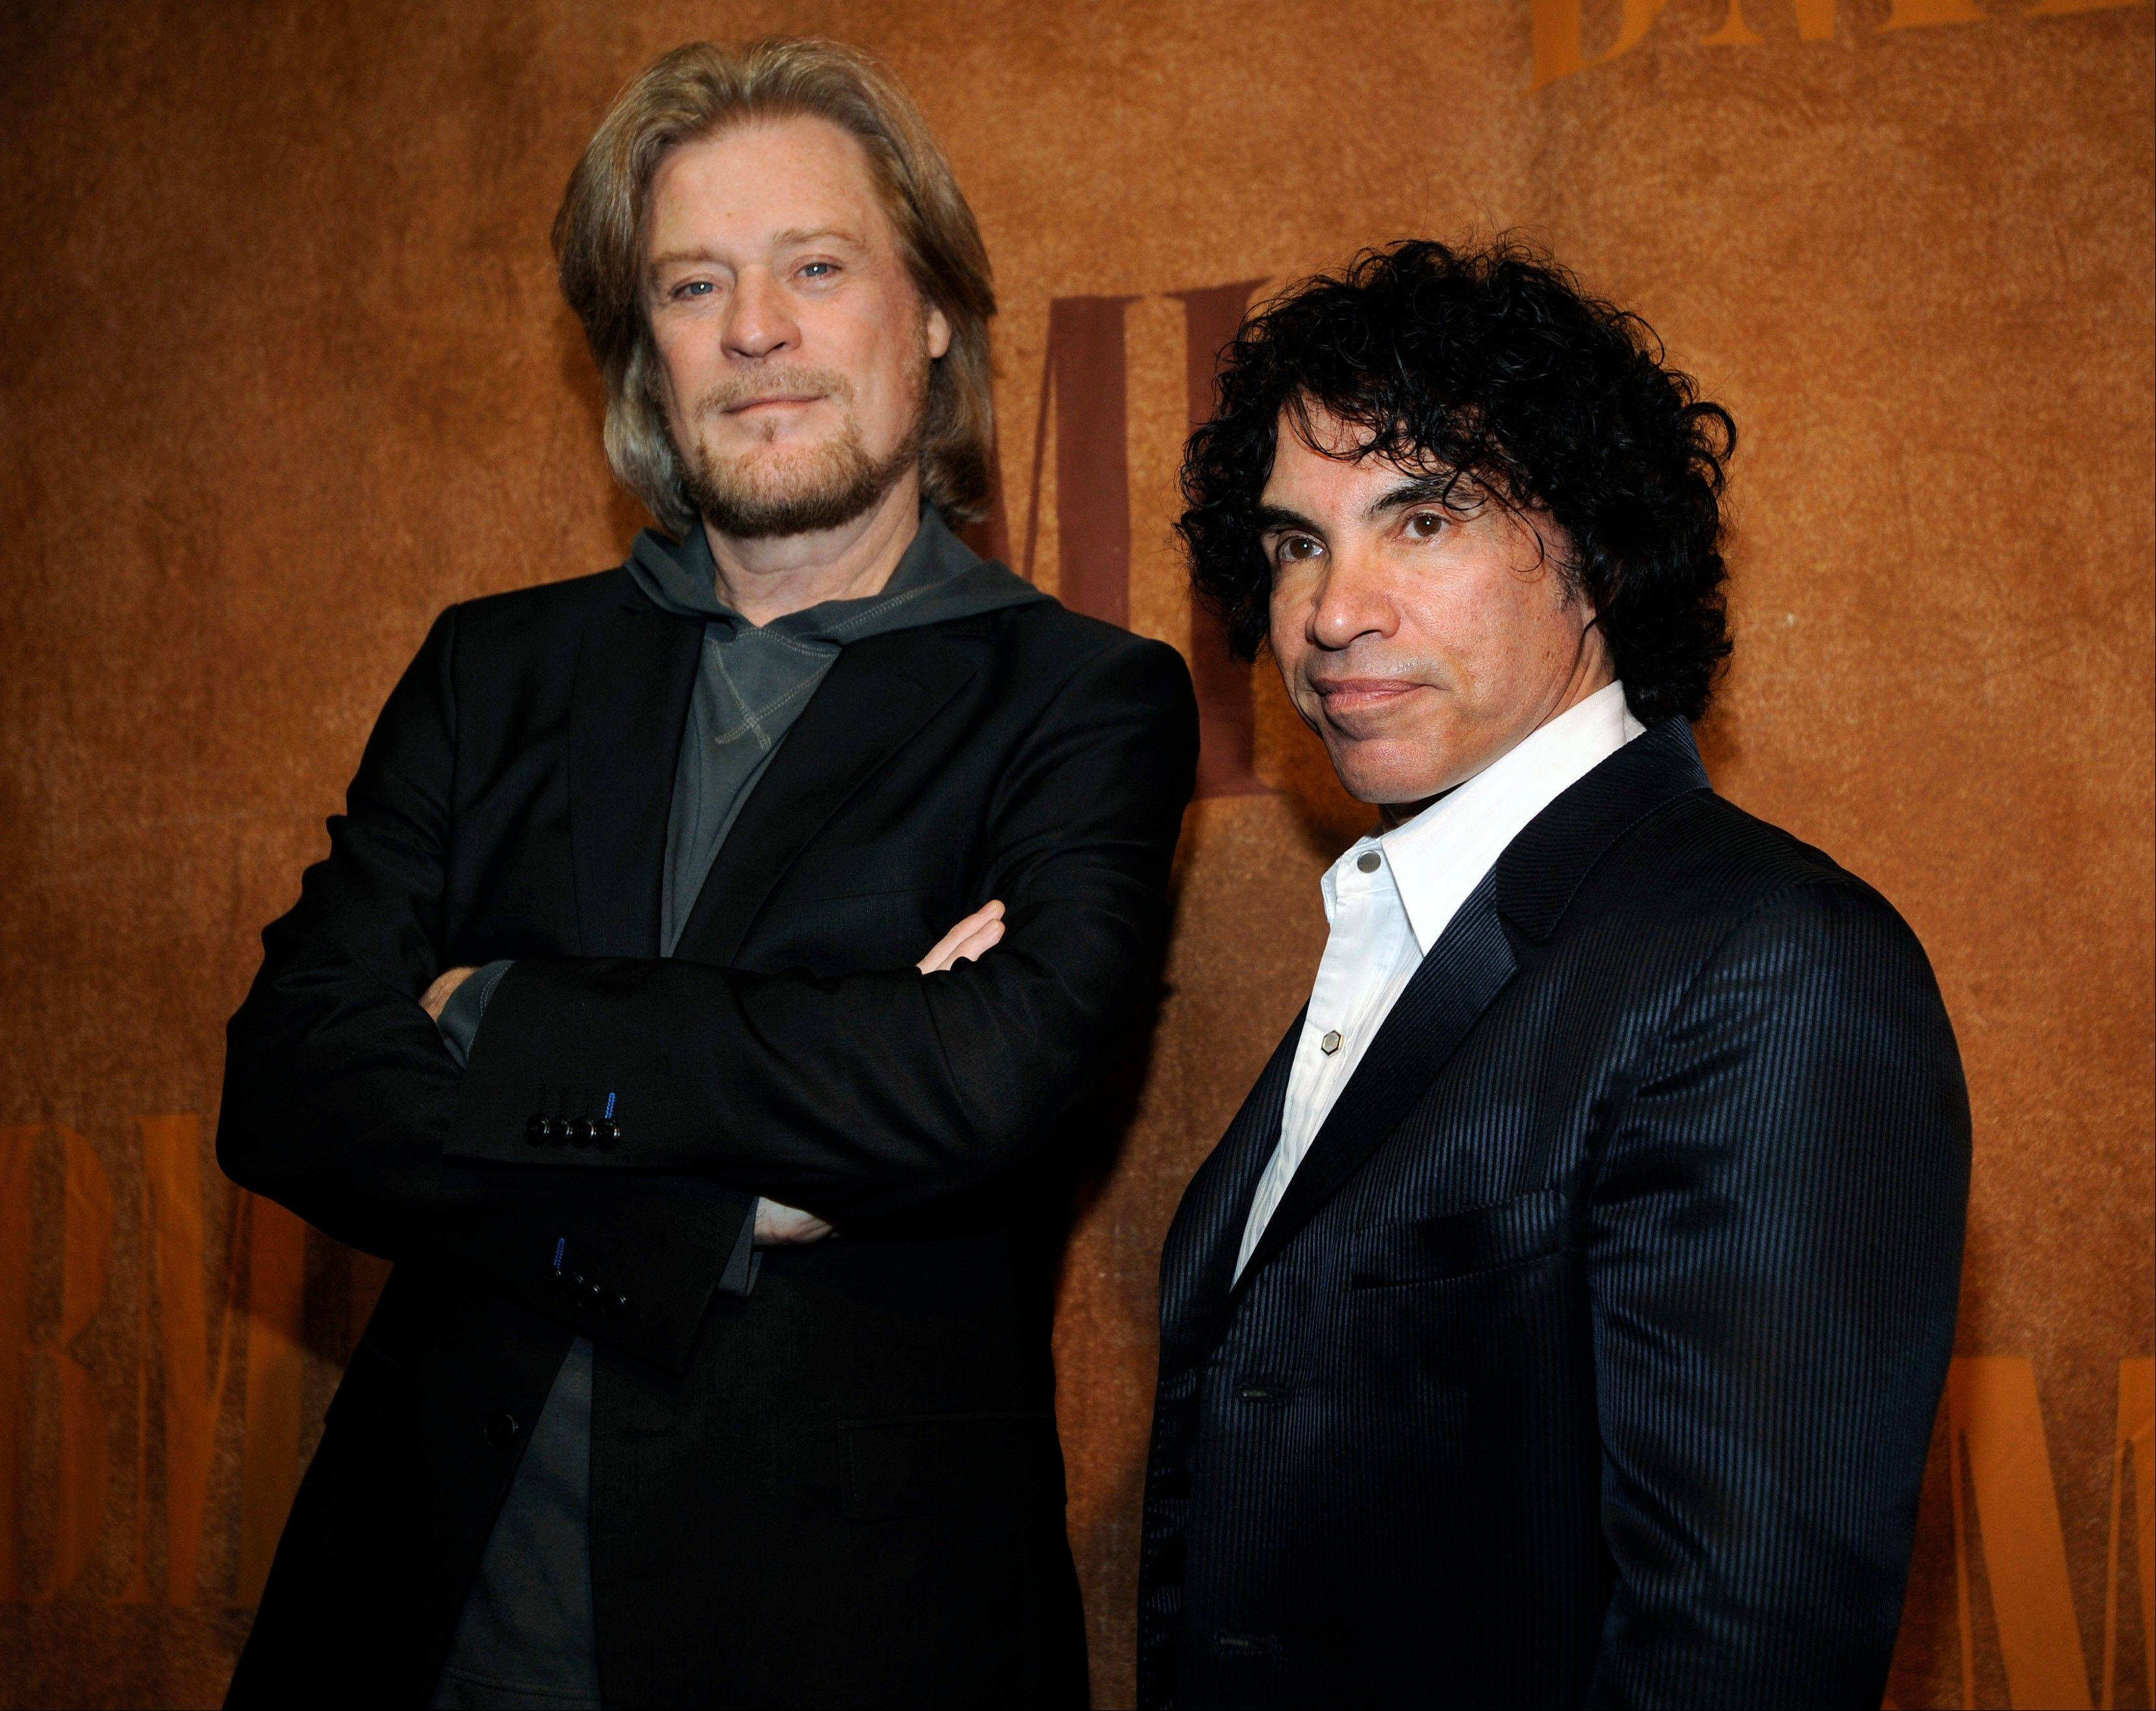 Daryl Hall, left, and John Oates pose before the 56th annual BMI Pop Awards in Beverly Hills, Calif. Hall and Oates will be inducted into the 2014 Rock and Roll Hall of Fame on April 10 at the Barclays Center in New York.